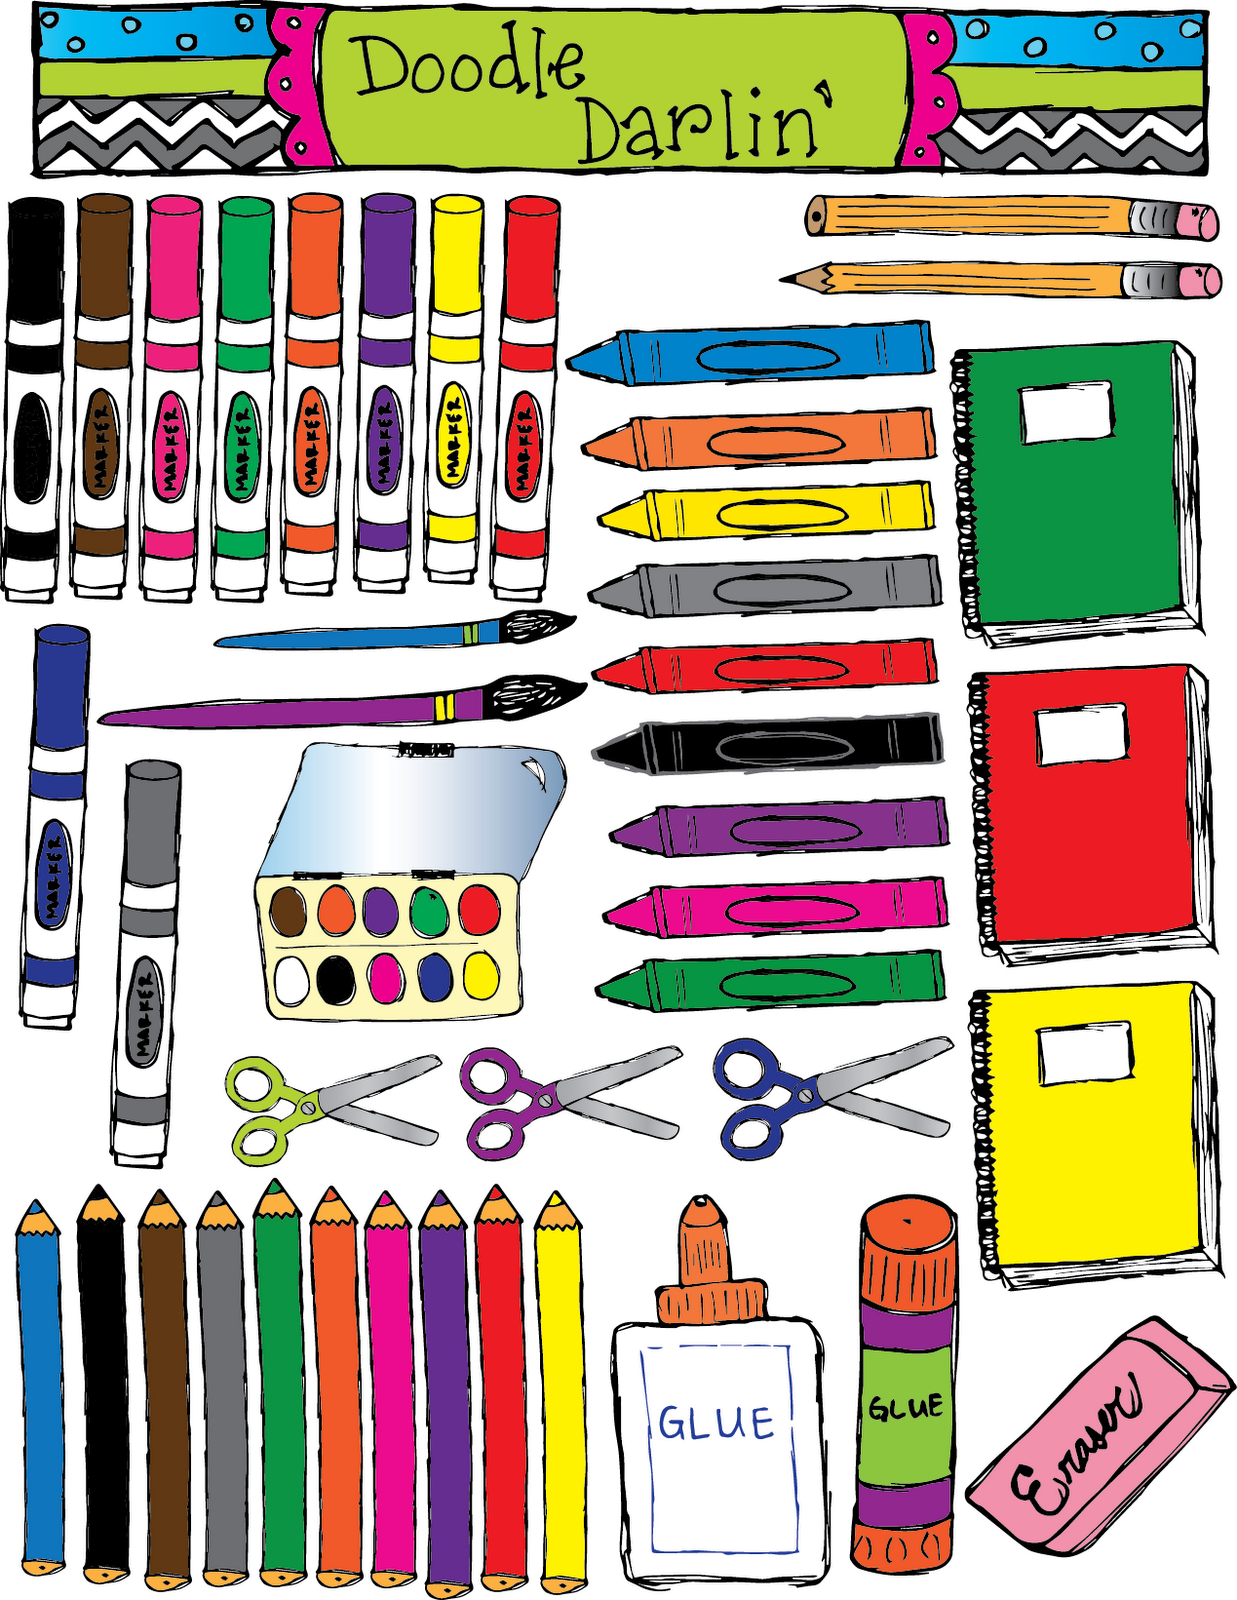 Marker clipart school Darlin': For Tools Tools and